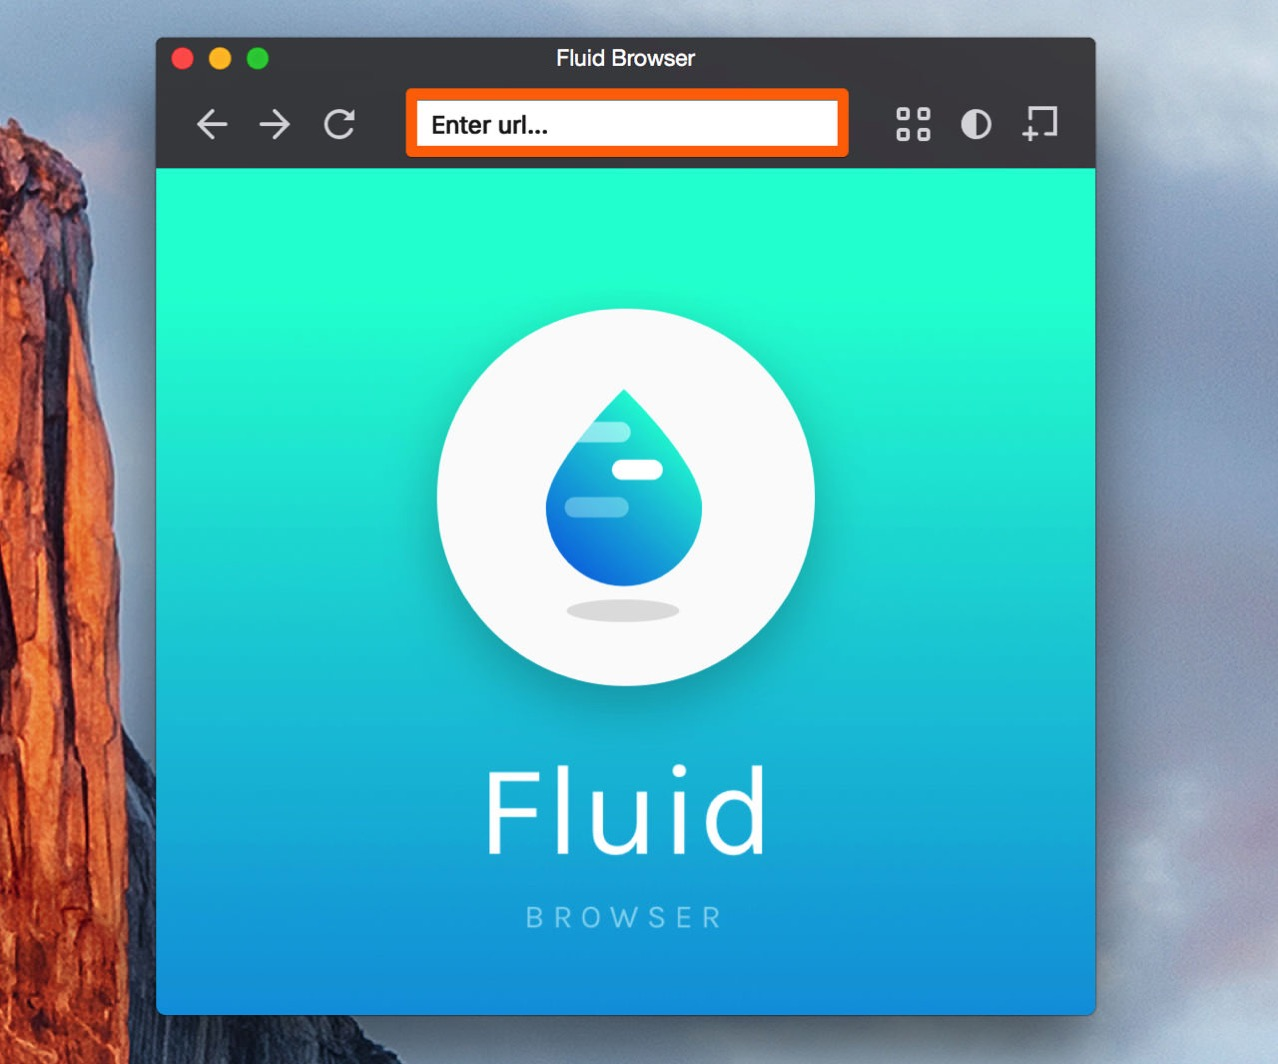 Fluid browser8